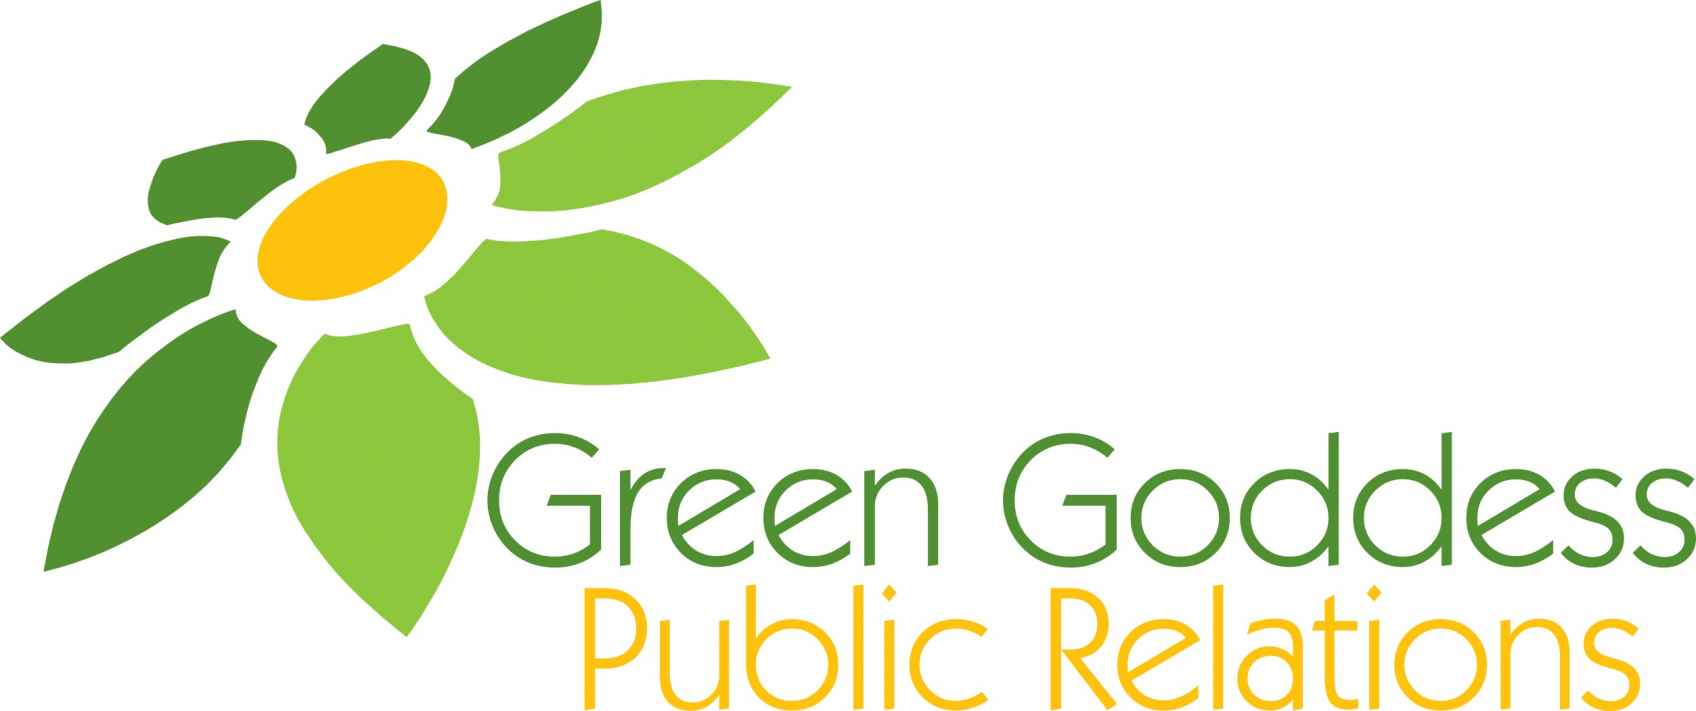 Green Goddess Public Relations Logo